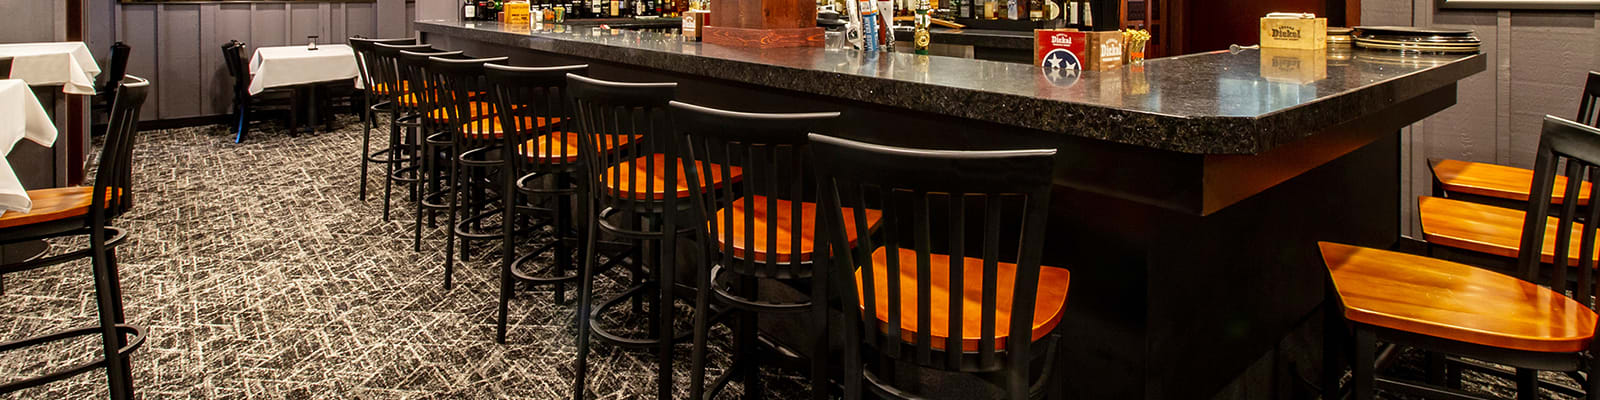 Union House in Genesee Goes Upscale with New Interior